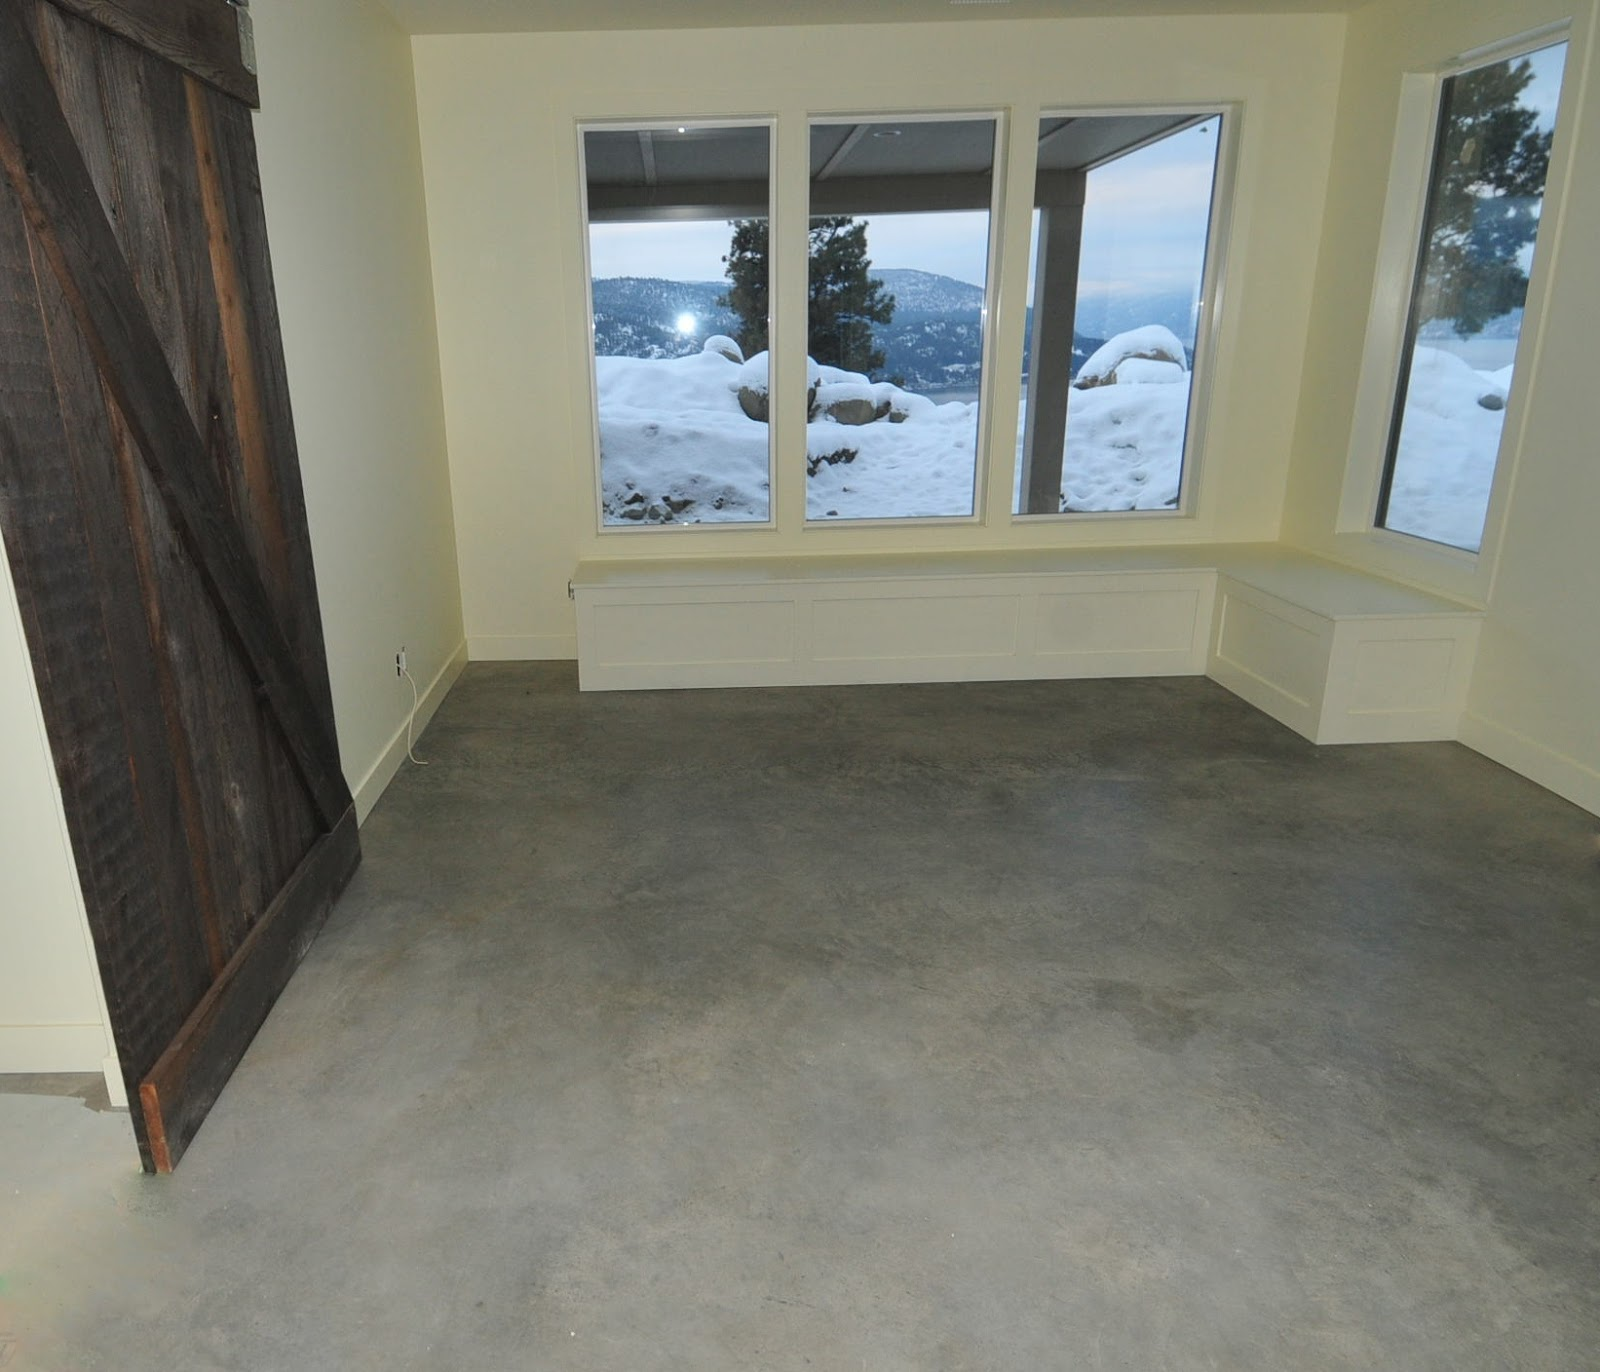 How To Carpet A Basement Floor: MODE CONCRETE: Basement Concrete Floors Naturally Look Amazing And Modern